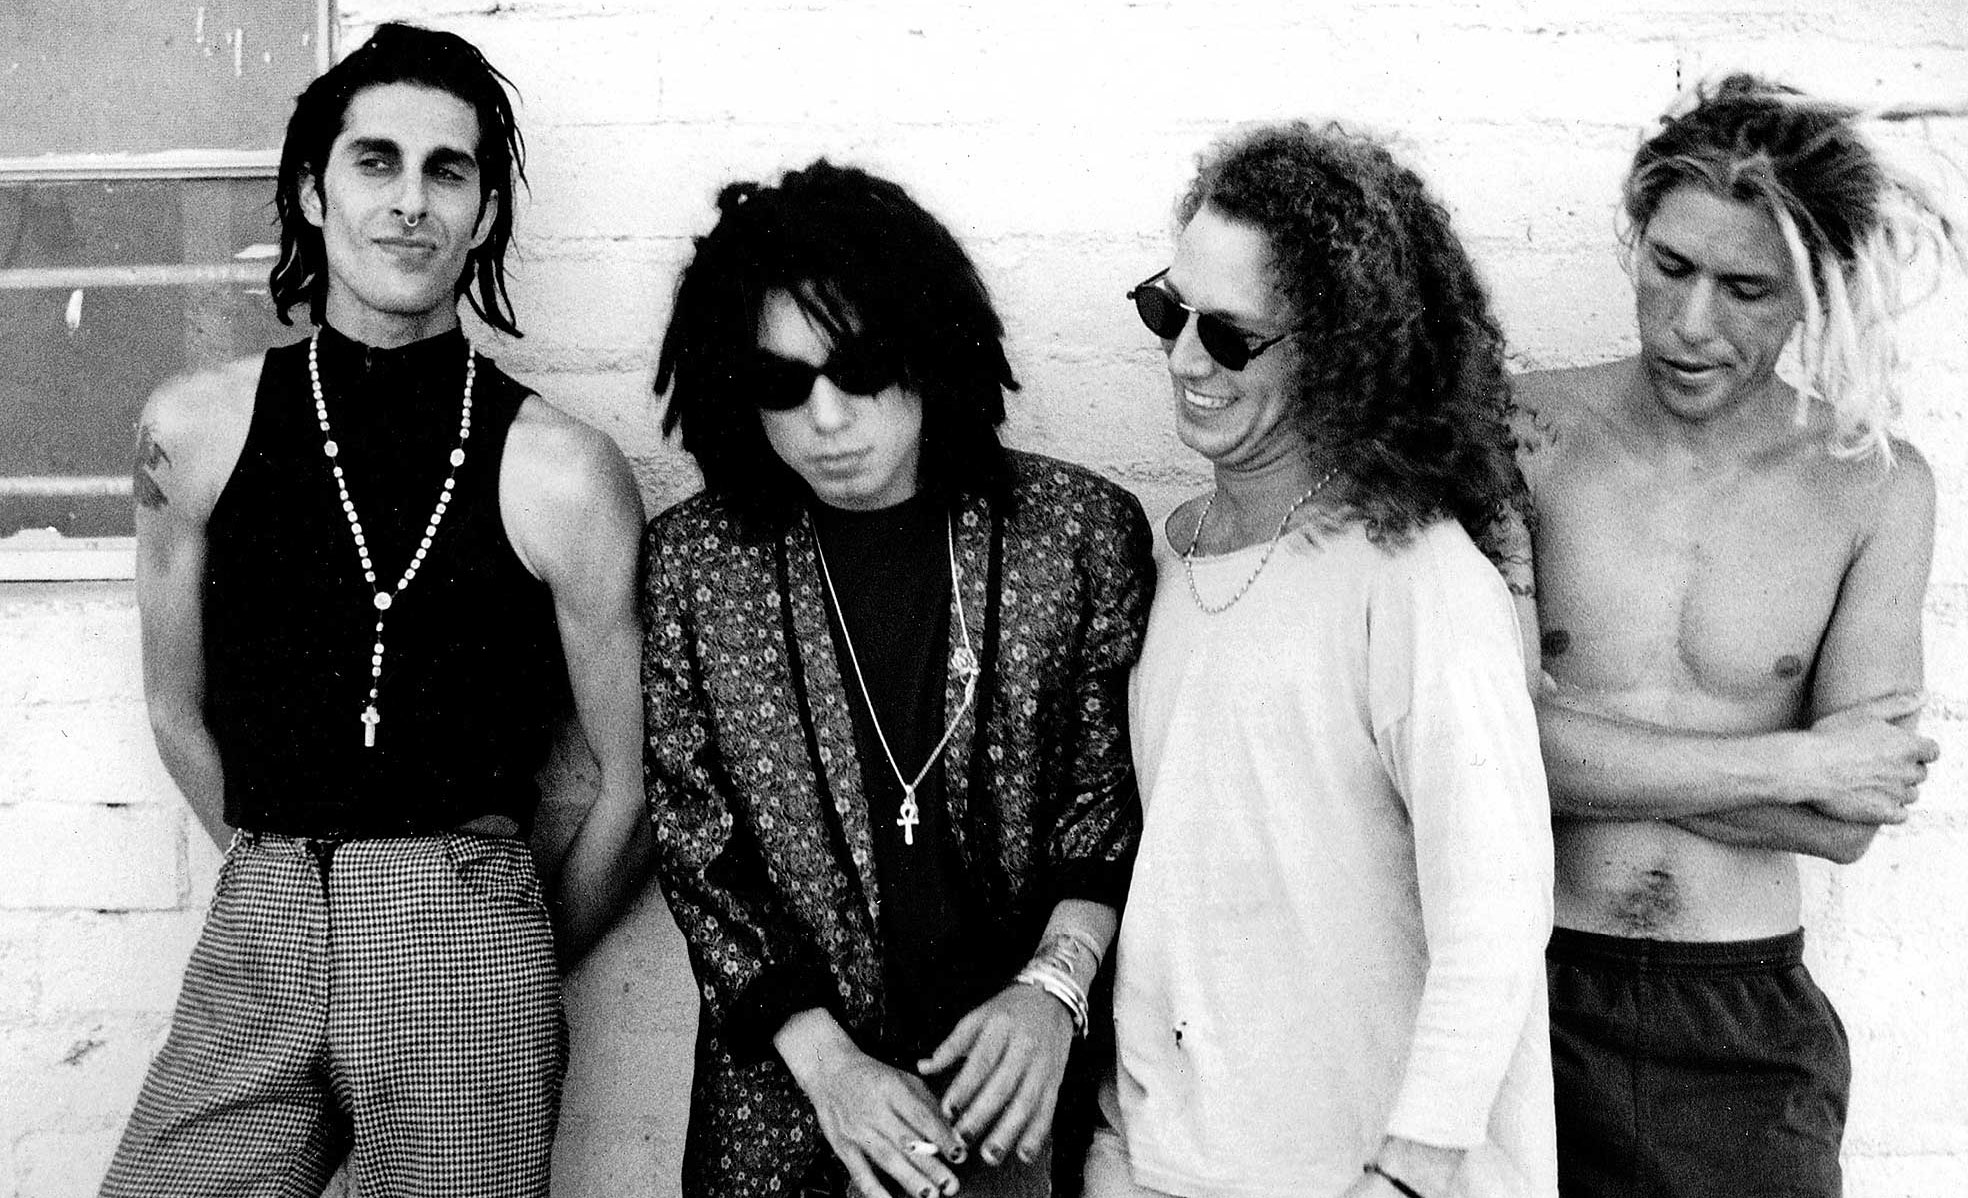 N. HOLLYWOOD - AUG. 3, 1990 - Members of rock group Jane's Addiction, from left: Perry Farrell, Dave Navarro, Stephen Perkins and Eric Avery. Photo: Los Angeles Times Scanned from library hard file on Oct. 29, 2013